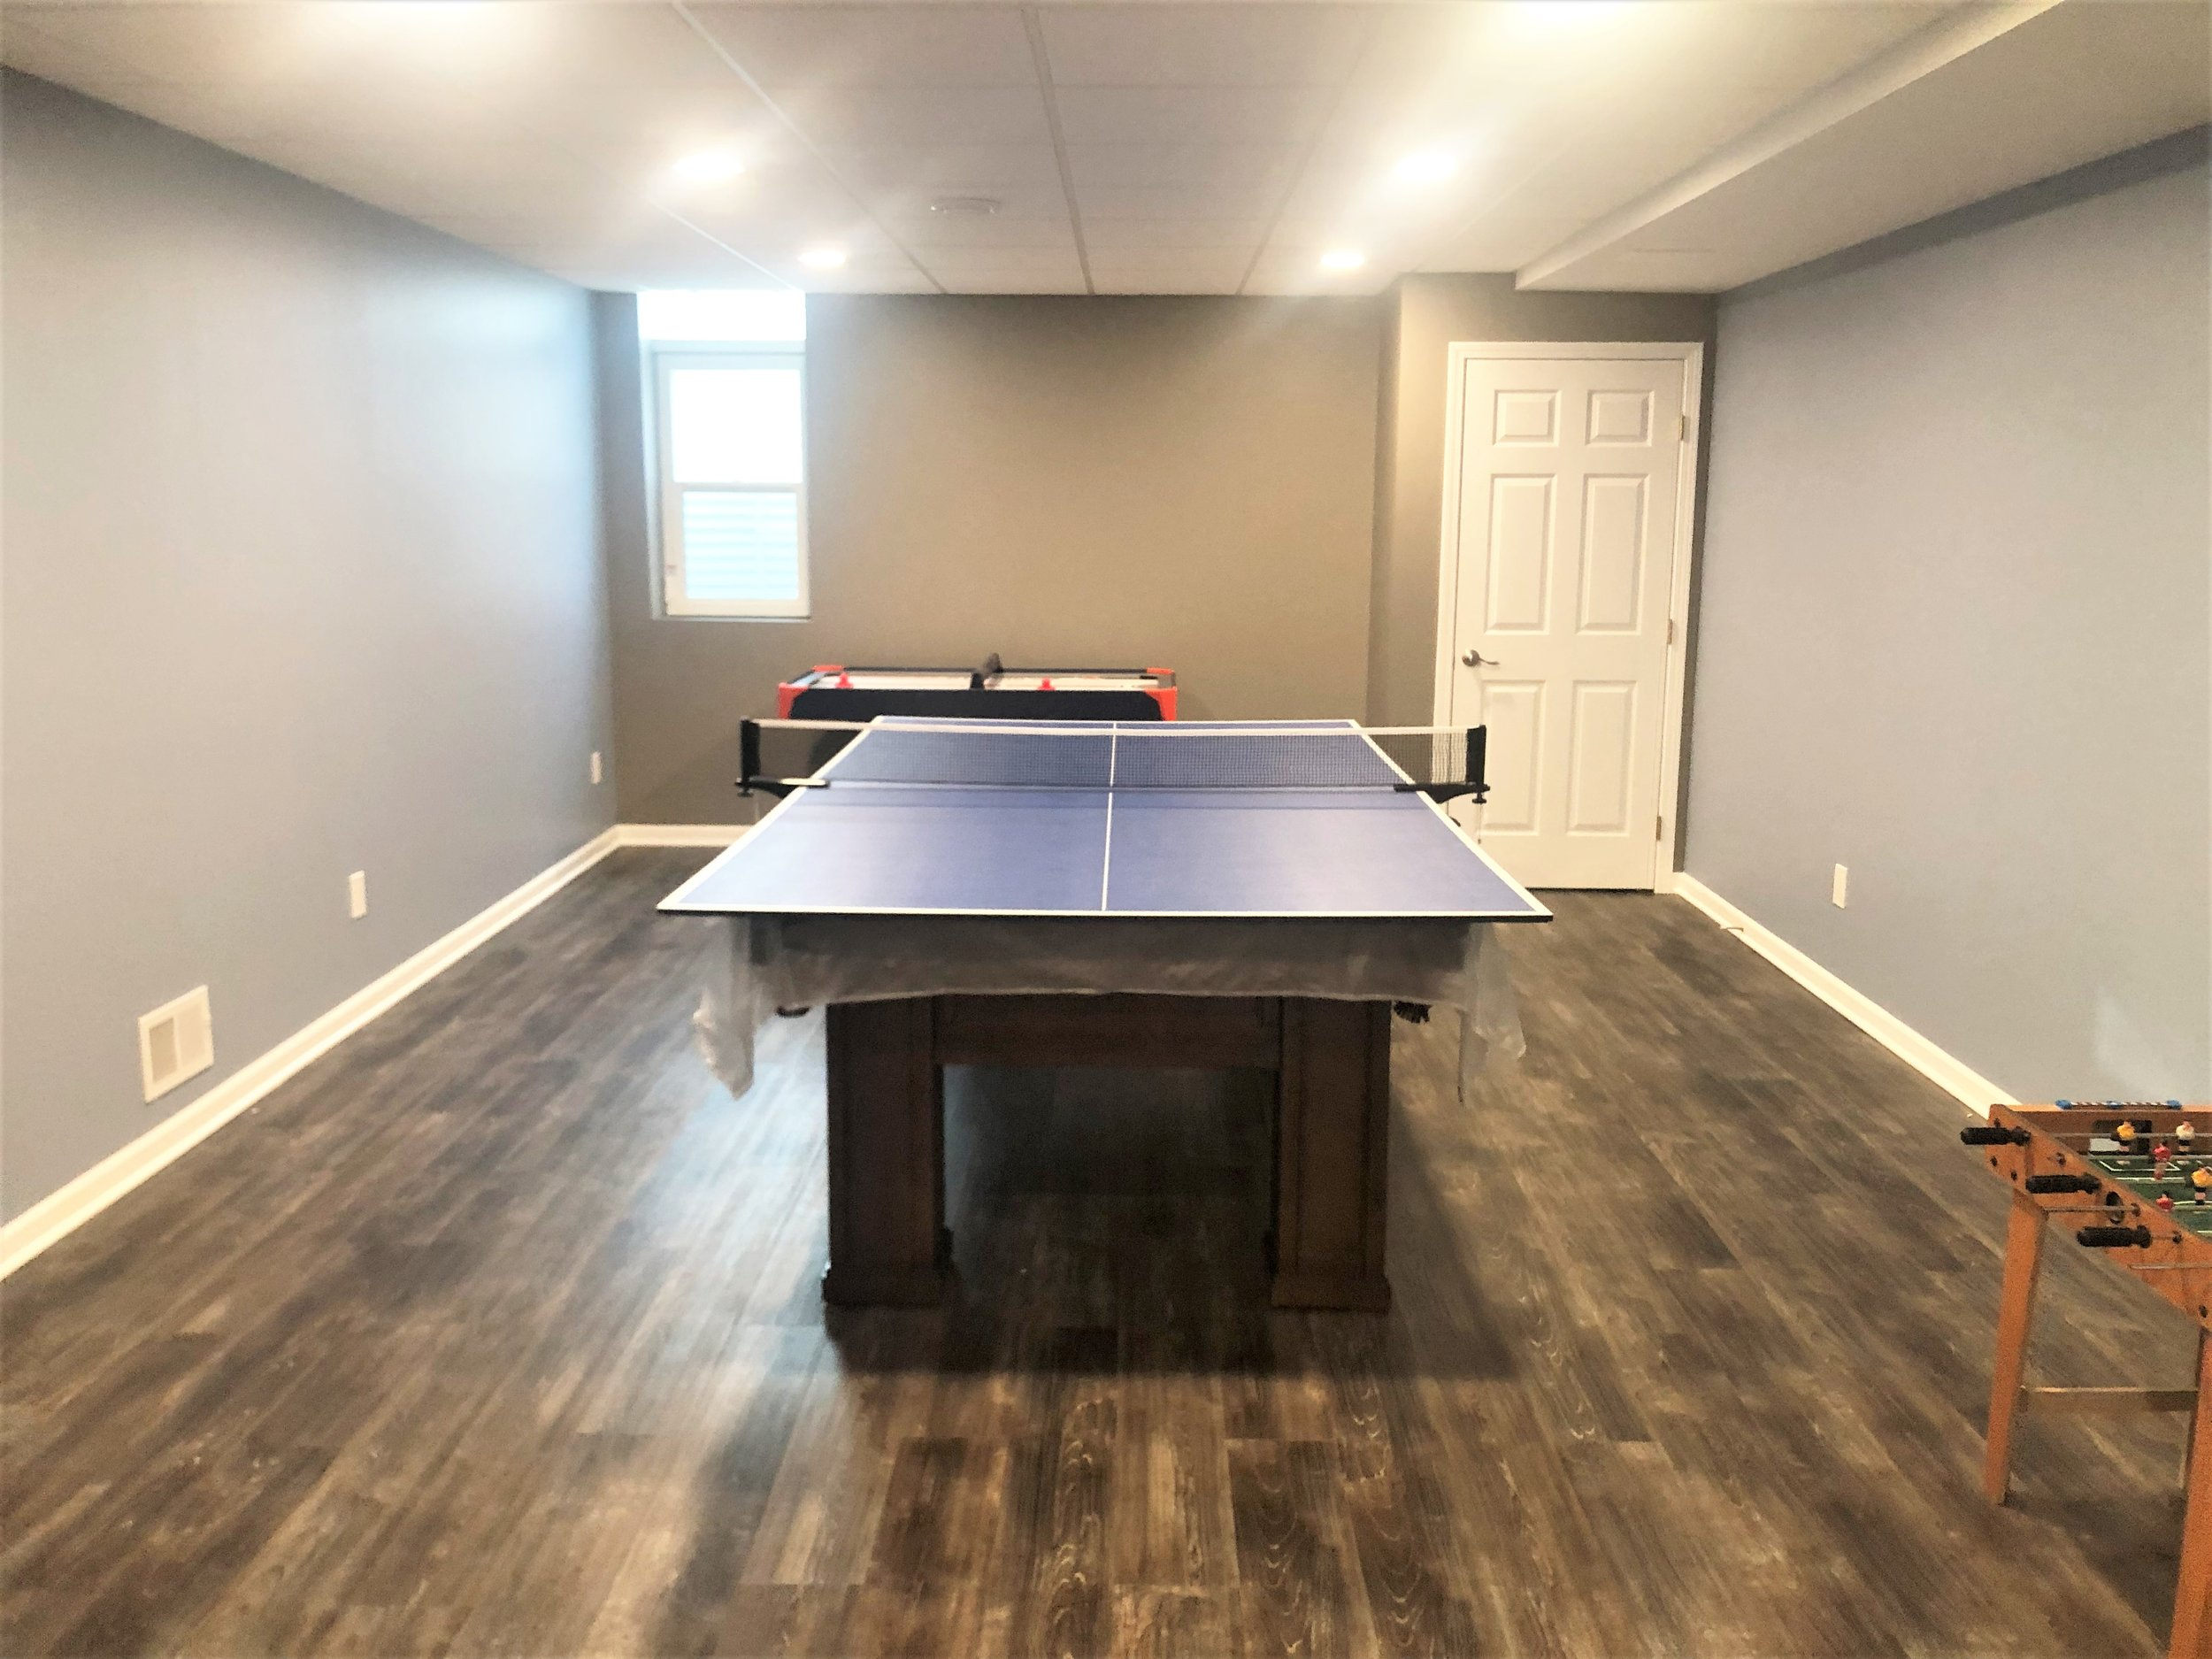 Basement Renovation in Ann Arbor